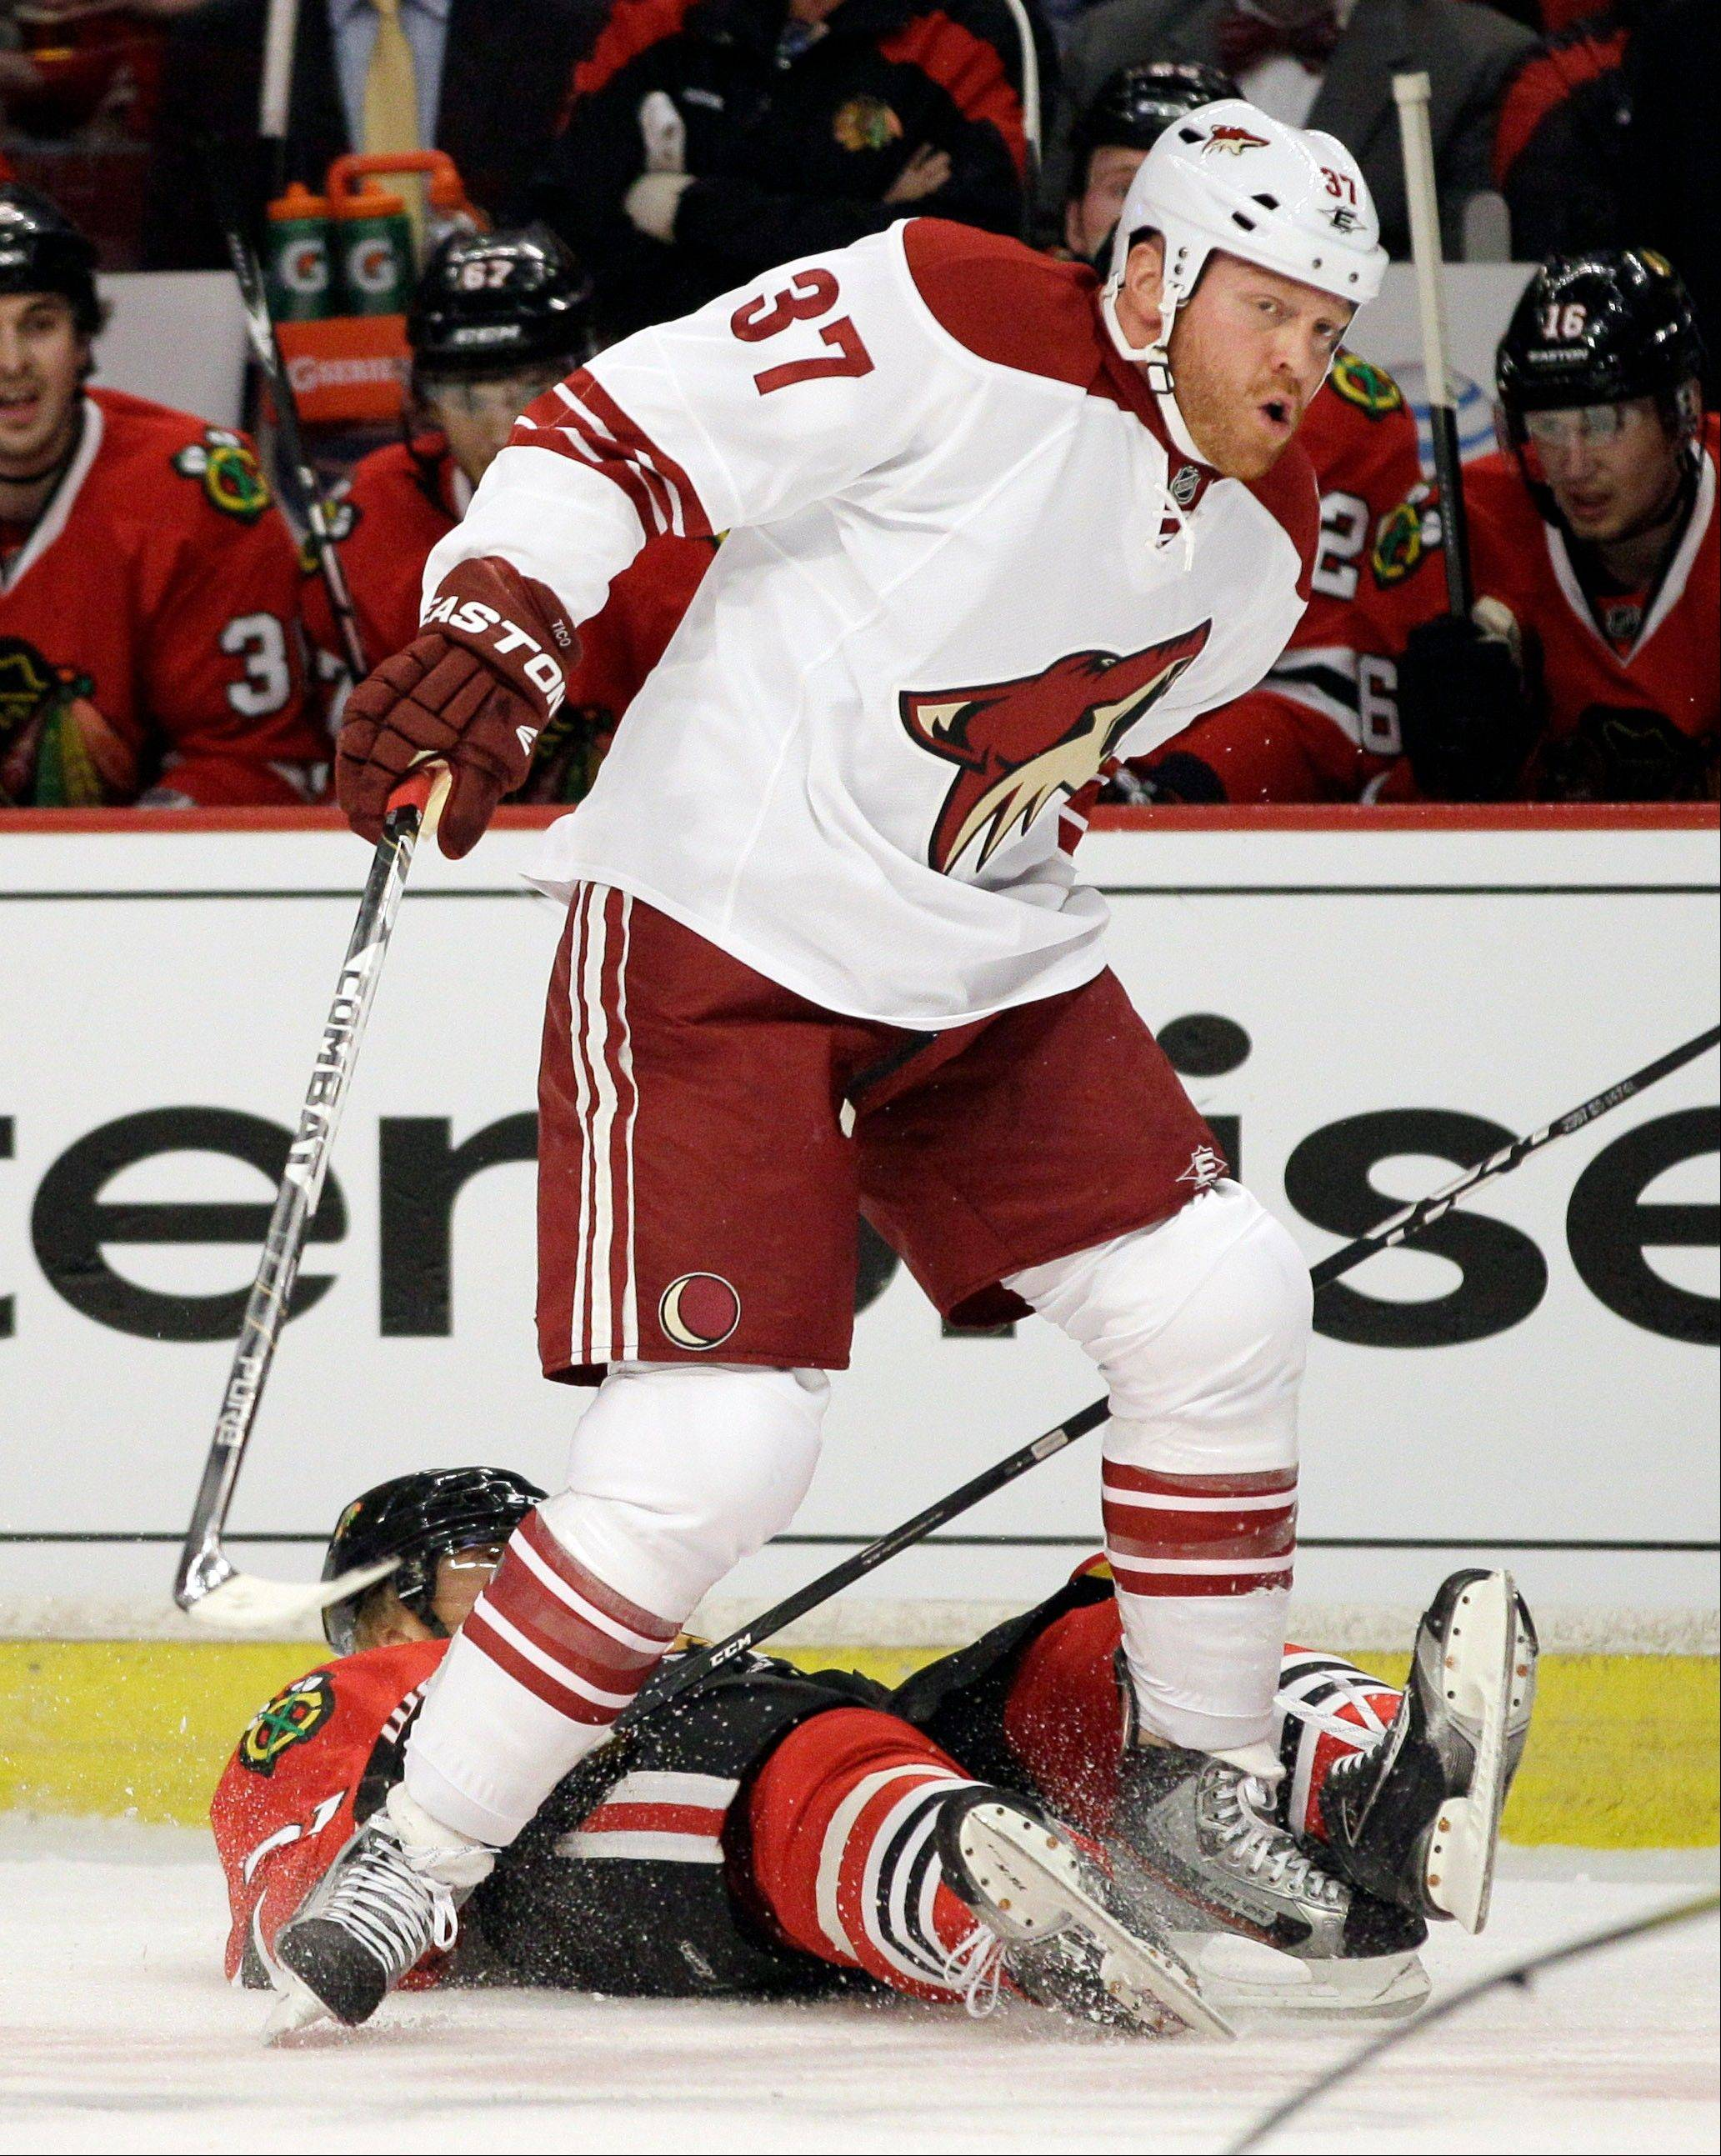 Coyotes' Torres suspended 25 games for Hossa hit